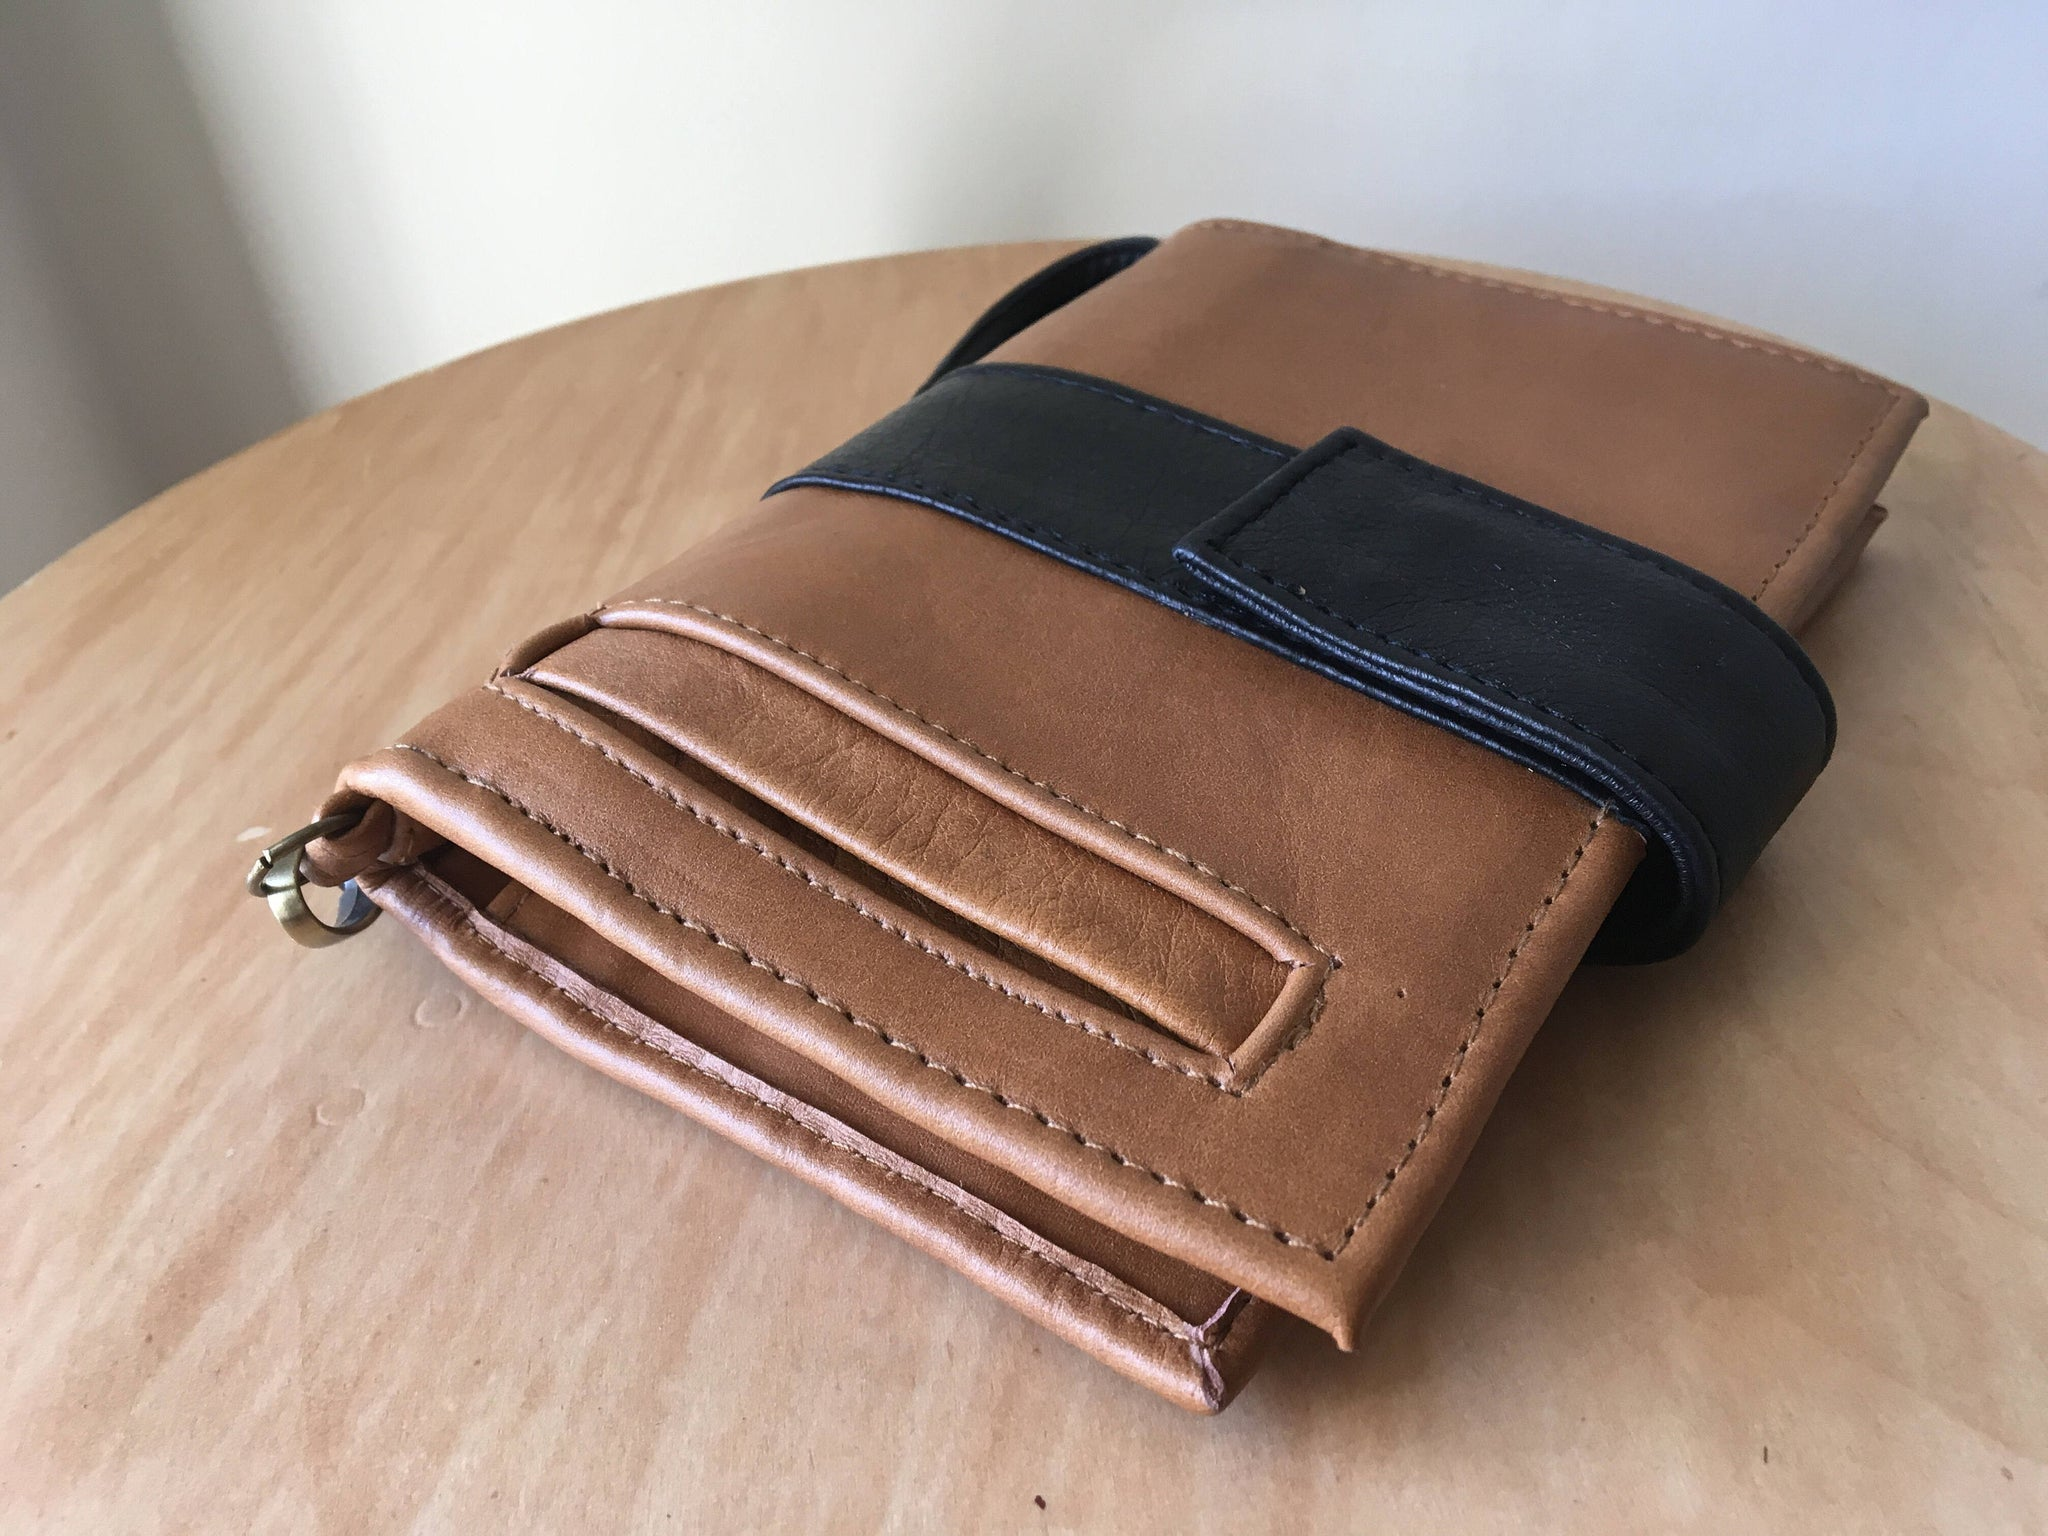 The Equity Wallet -Beautiful luxurious leather phone wallet.Wristlet with 27 card slots, photo windows and pockets. Lots of room. Mini clutch purse